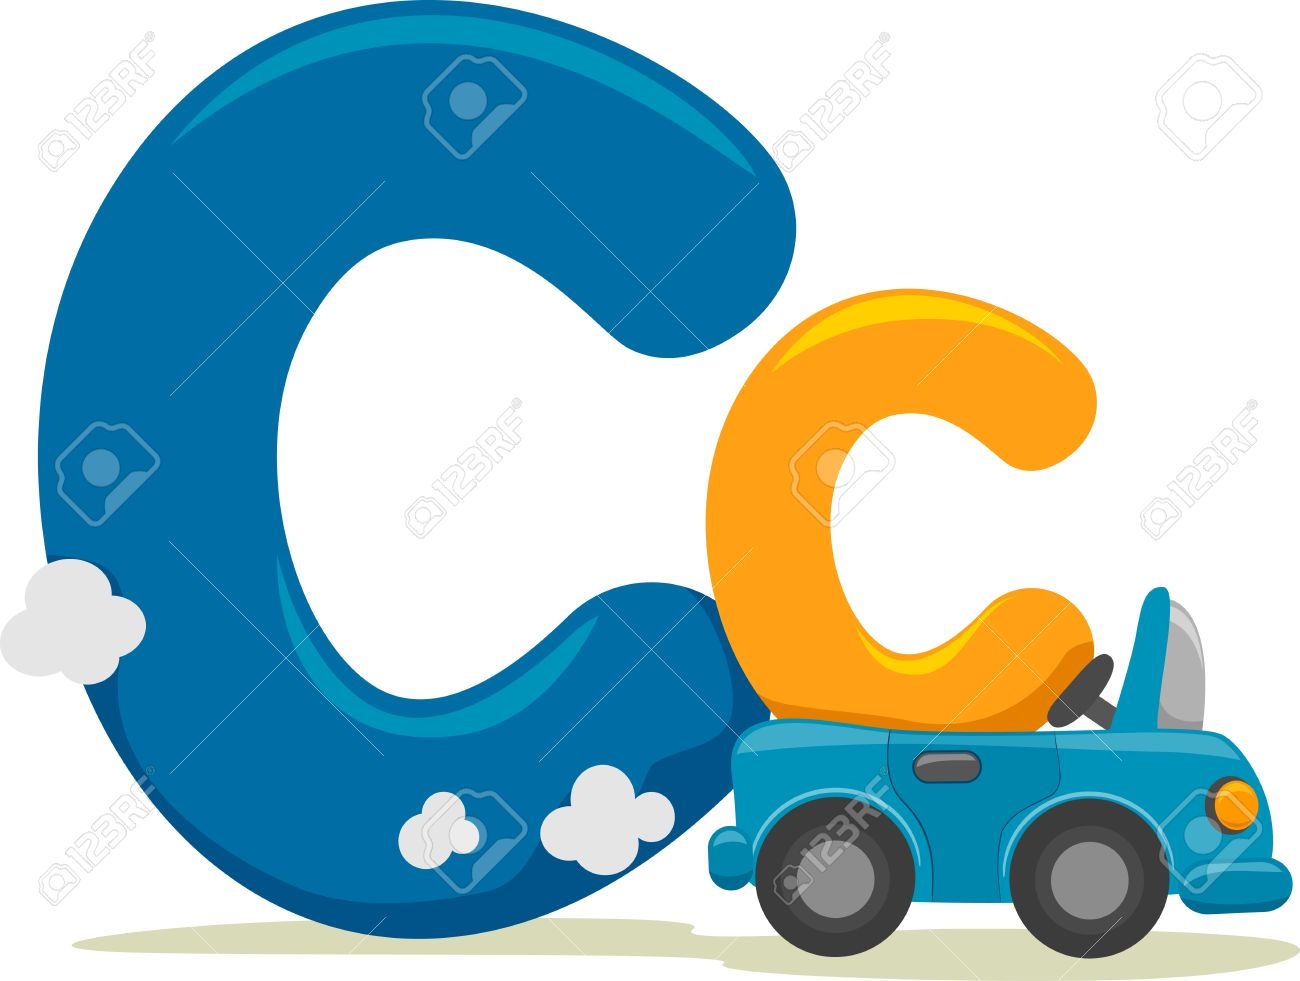 Alphabet letters clip art c jpg freeuse stock Illustration Featuring The Letter C Stock Photo, Picture And ... jpg freeuse stock